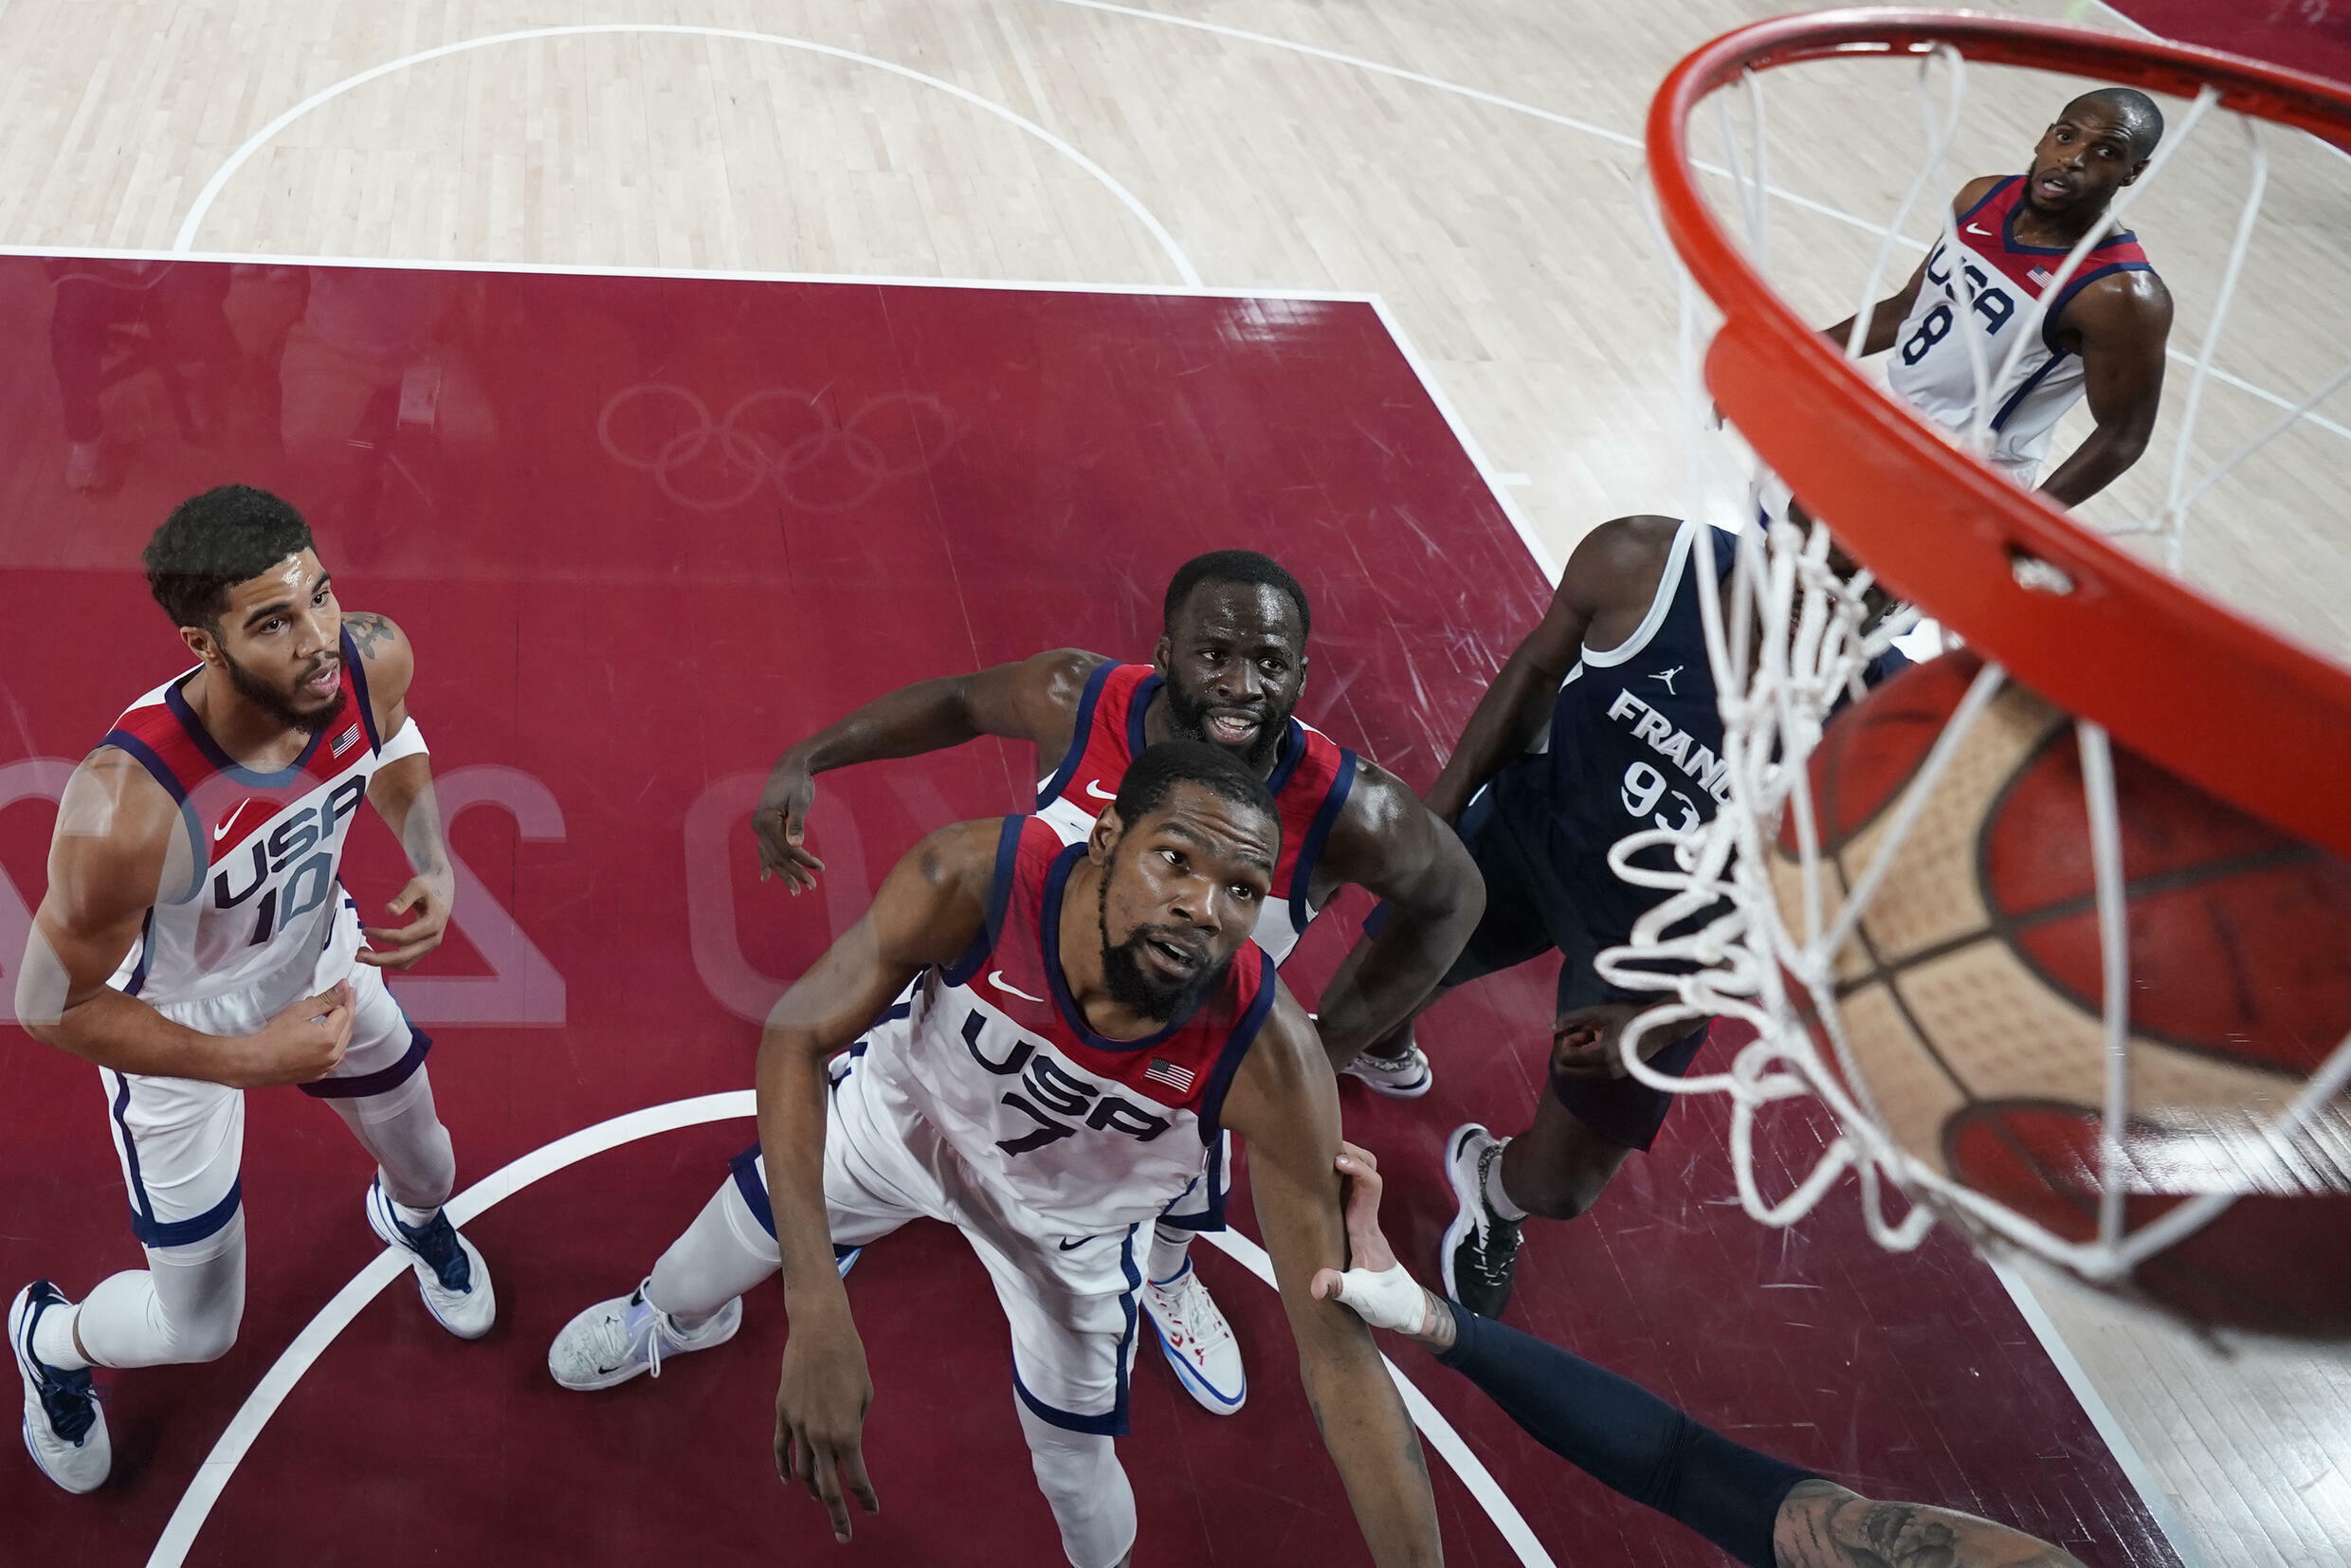 The United States play France in the men's basketball final